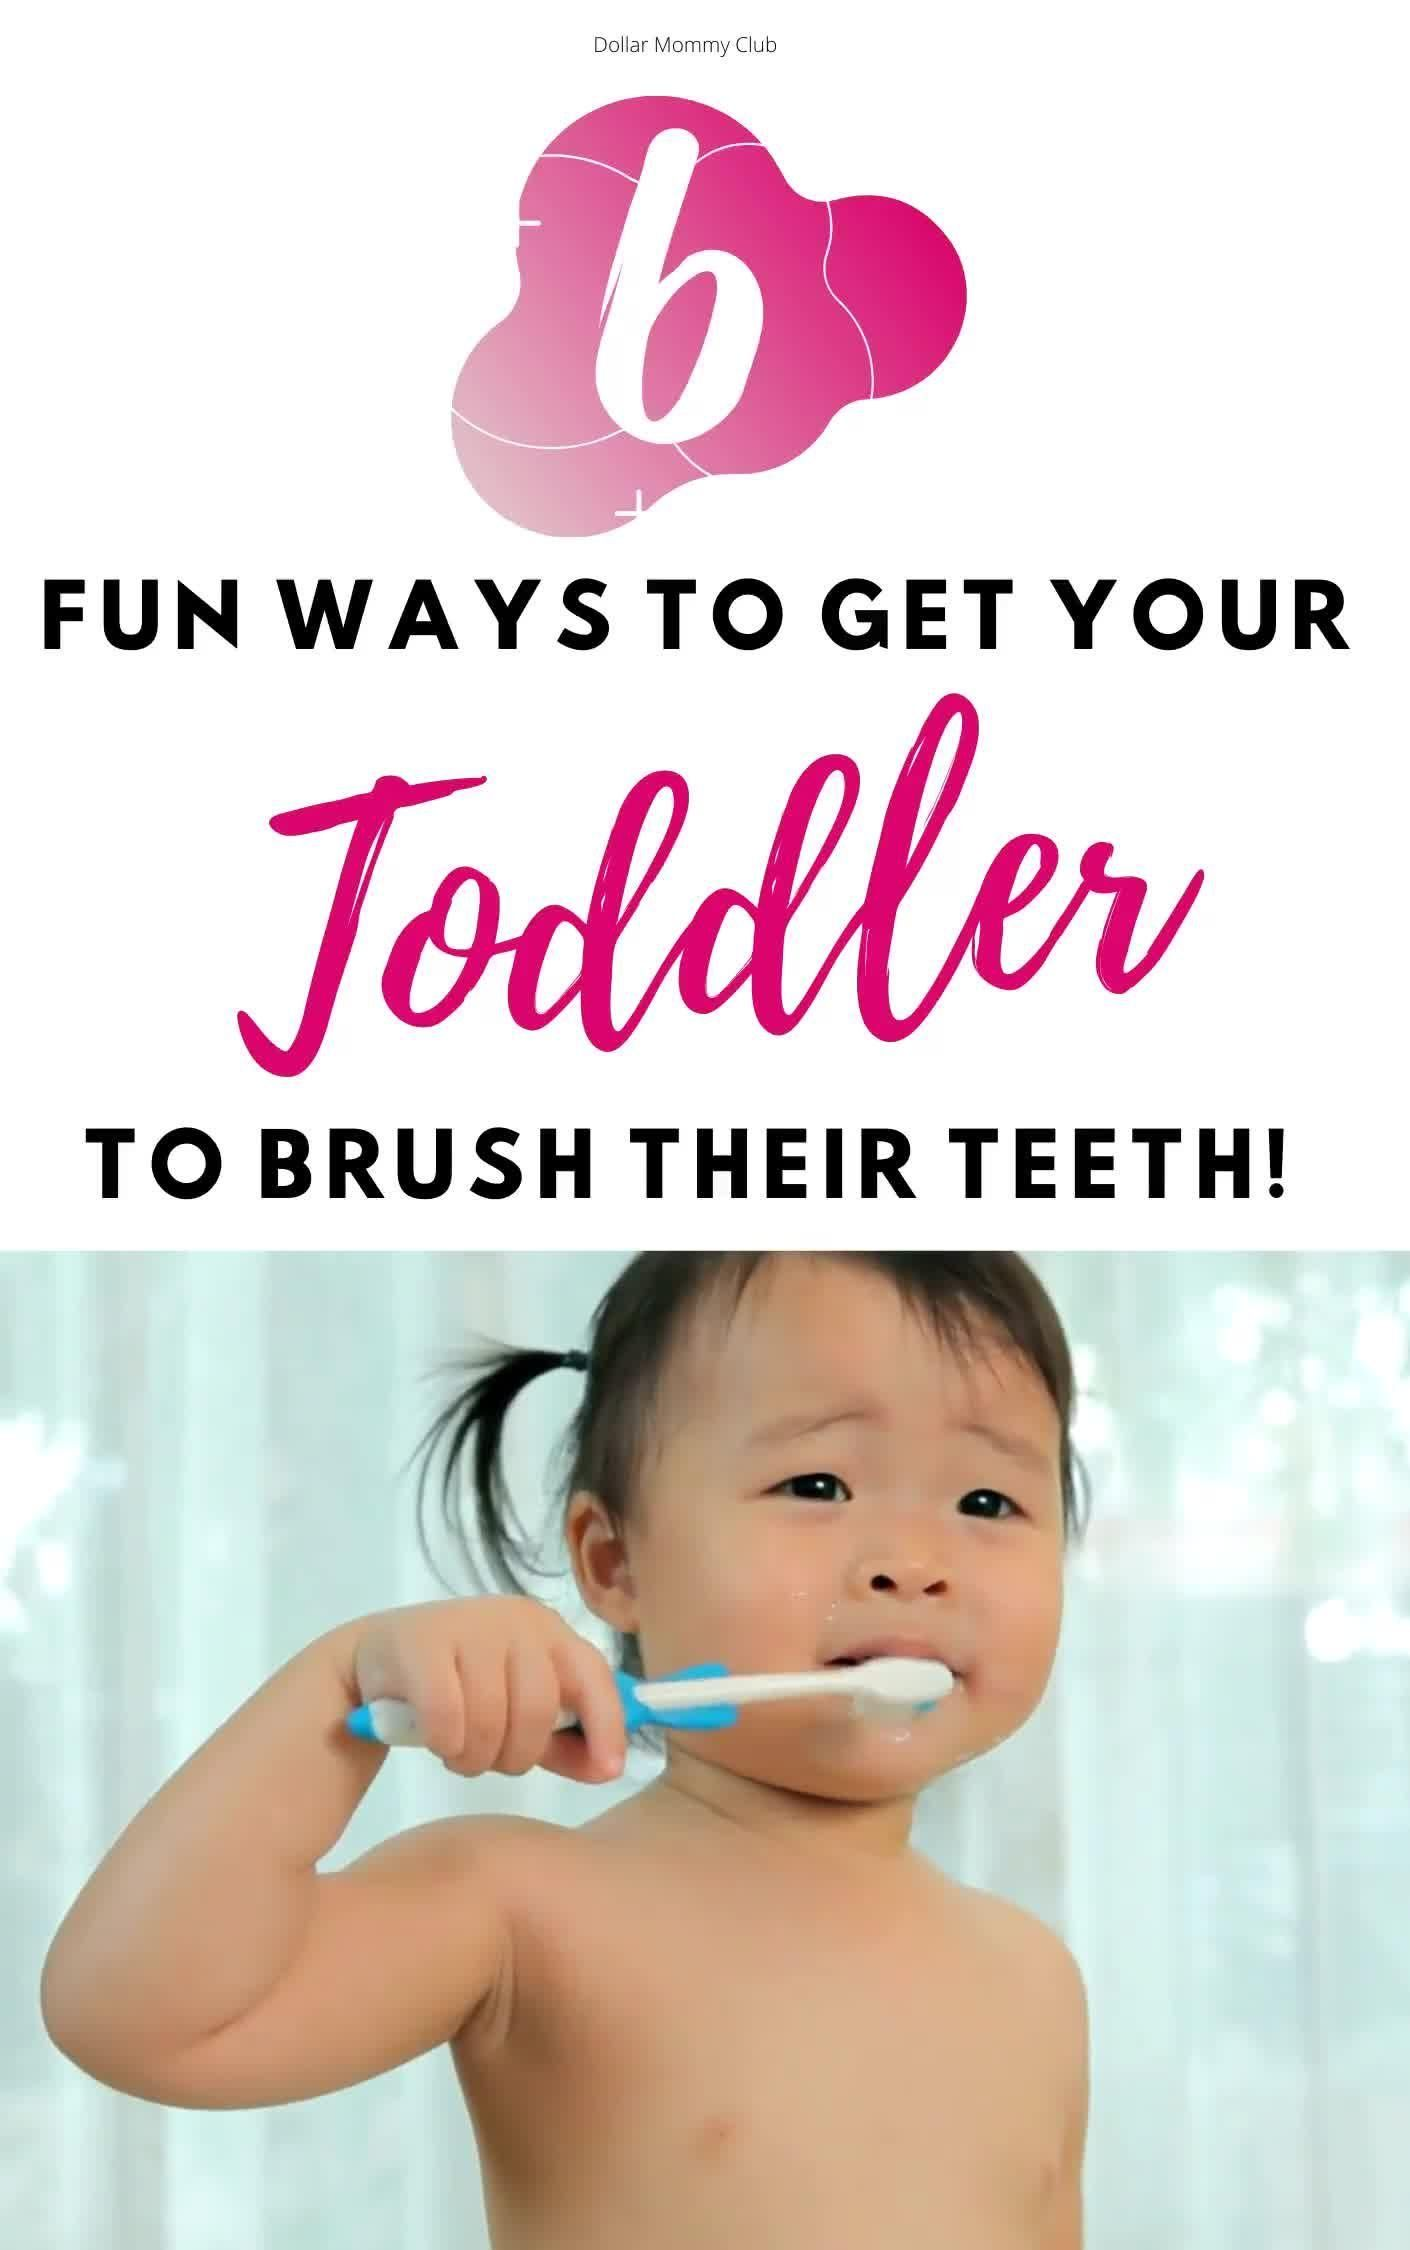 Photo of How To Get Your Toddler To Brush Their Teeth Without Power Struggles – Dollar Mommy Club